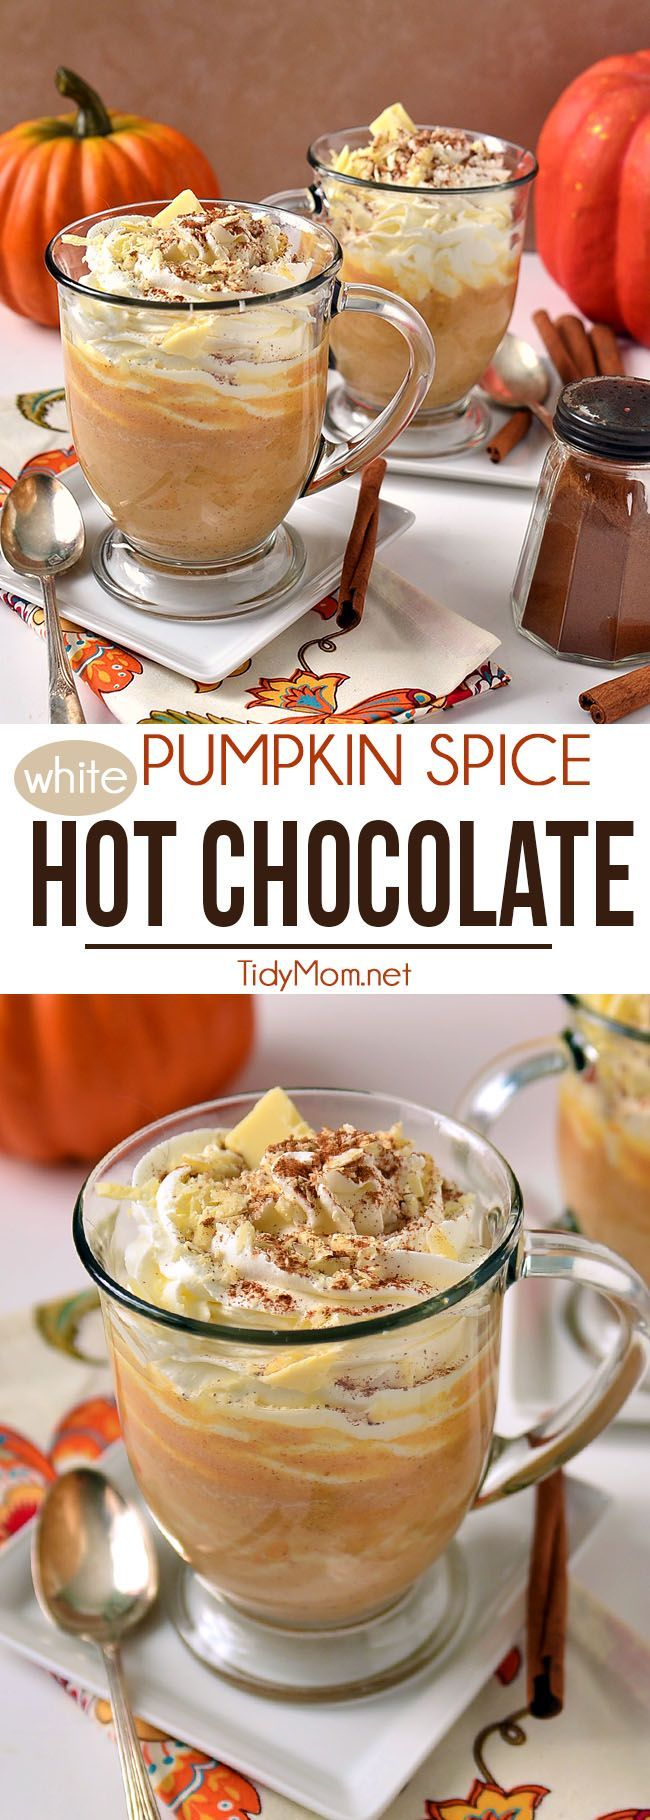 Pumpkin Spice White Hot Chocolate - a deliciously thick and decadent fall drink that does not include coffee - keep it on warm in a slow cooker for a party! Just like pumpkin pie in a mug! Perfect for a chilly fall evening! Pumpkin Spice White Hot Chocolate recipe at TidyMom.net